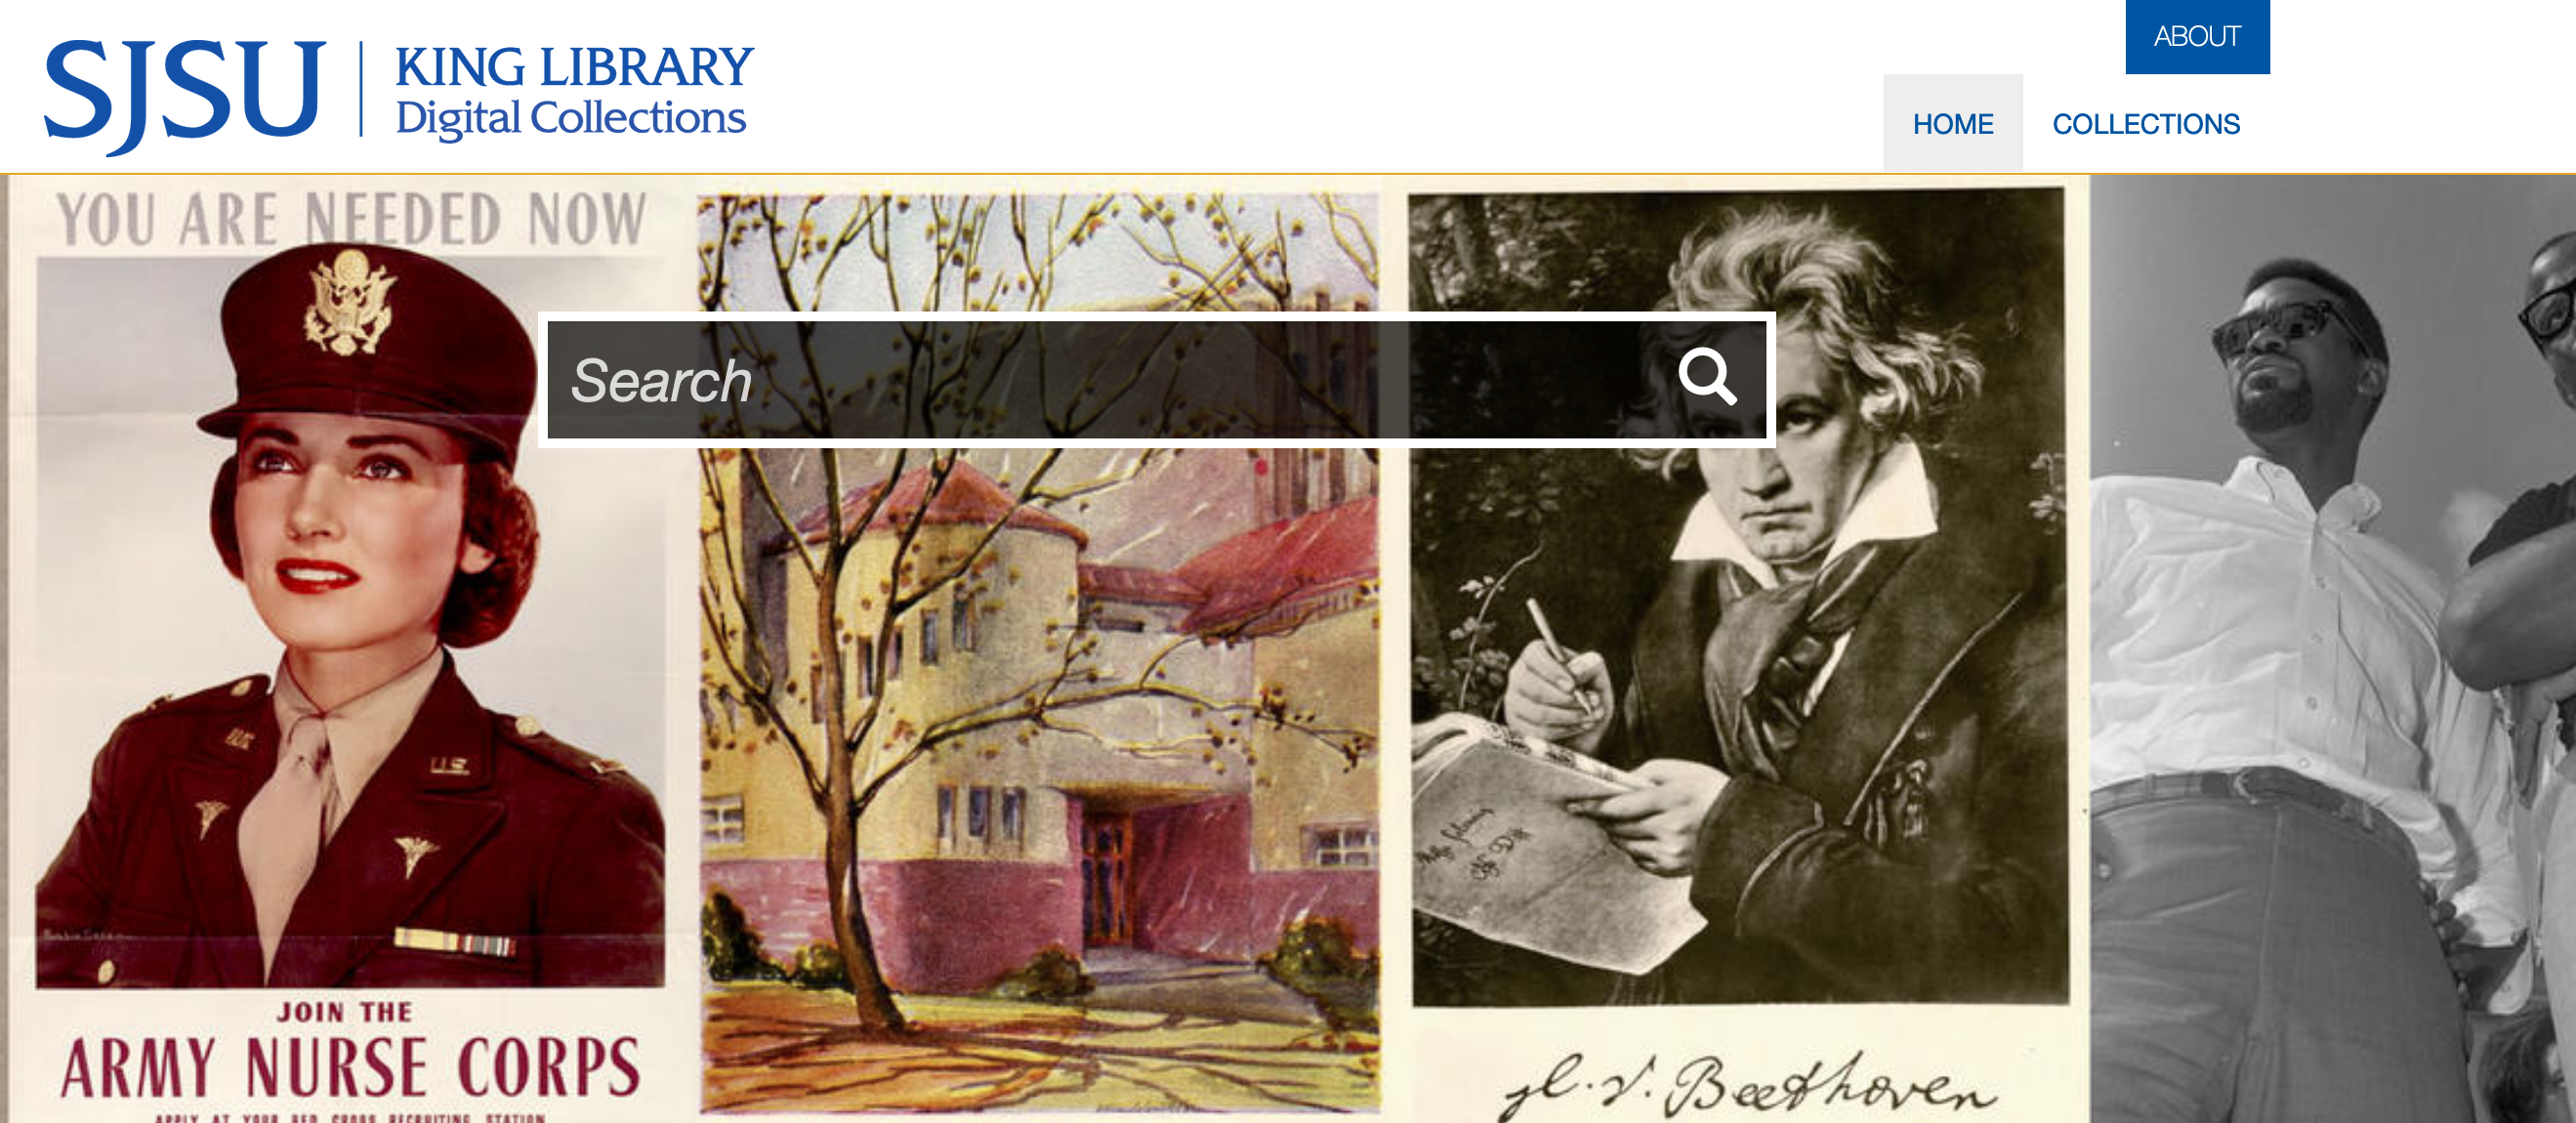 Home page of Digital Collections